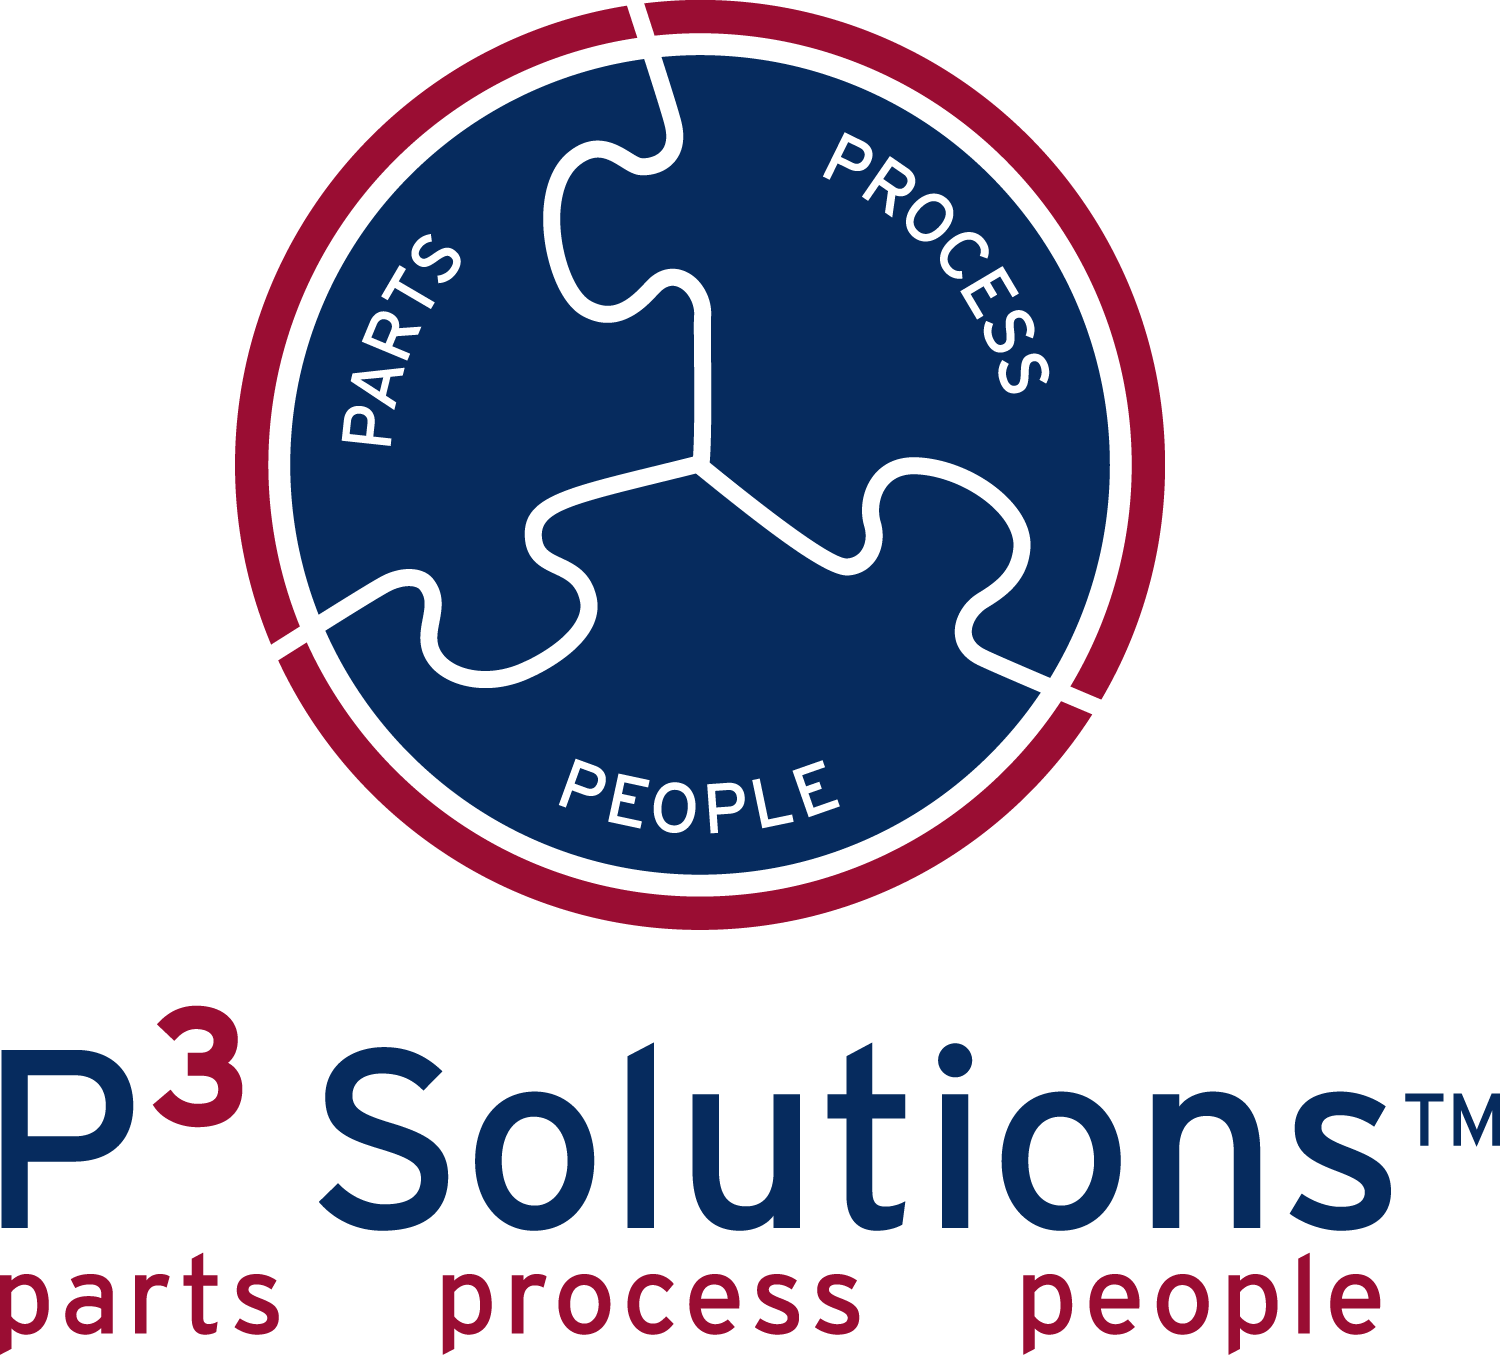 P3 Solutions: Parts, Process, People